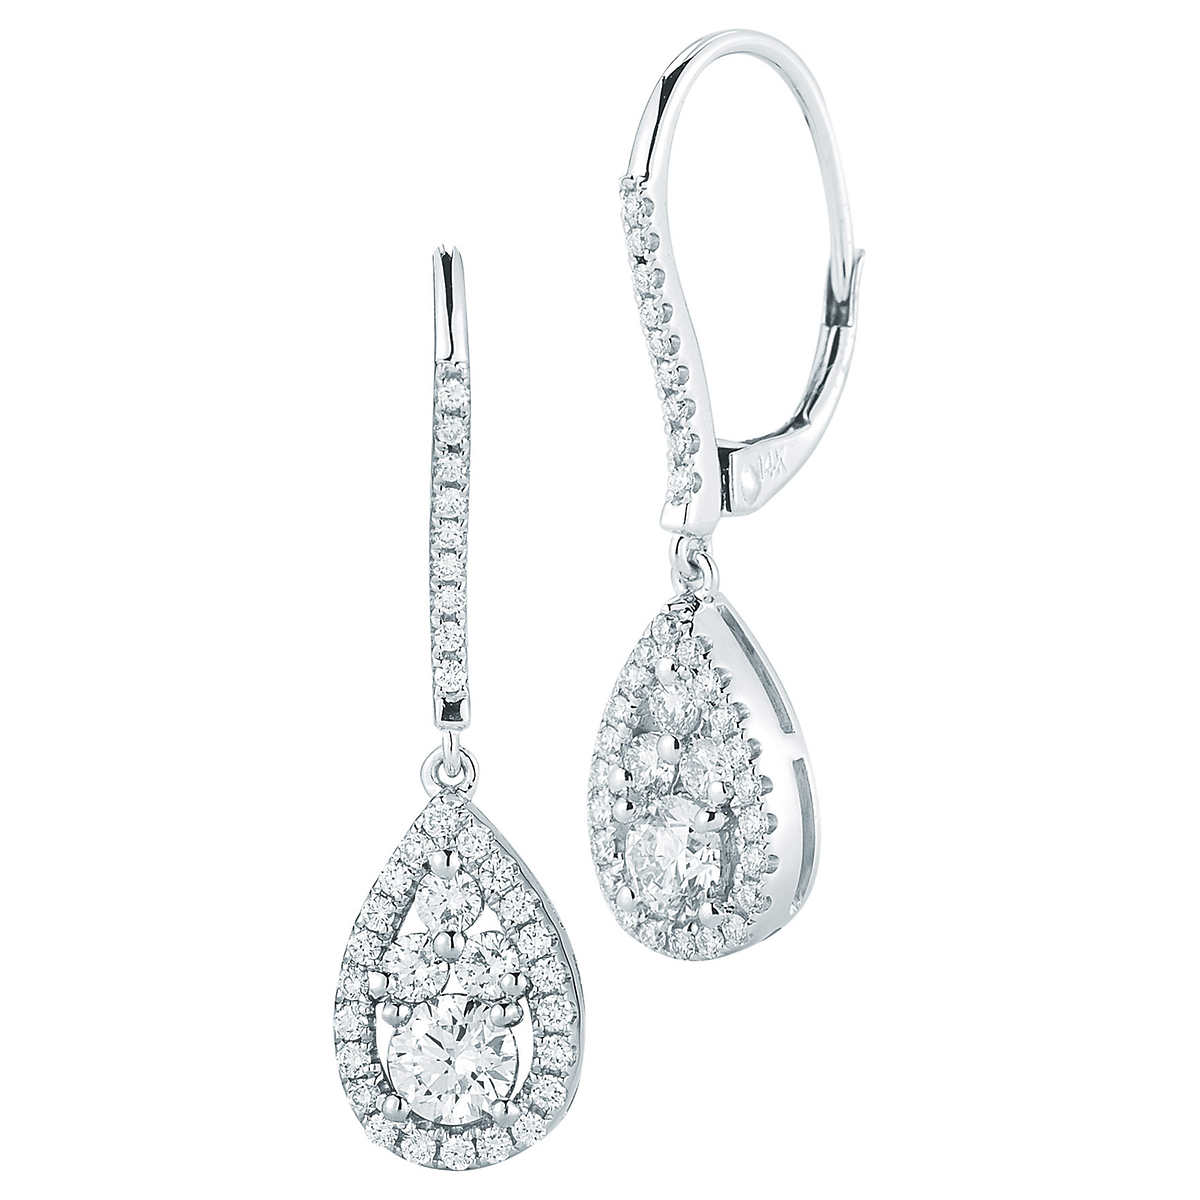 Round Brilliant 095 Ctw Vs2 Clarity, I Color Diamond 14kt White Gold Tear Drop  Earrings